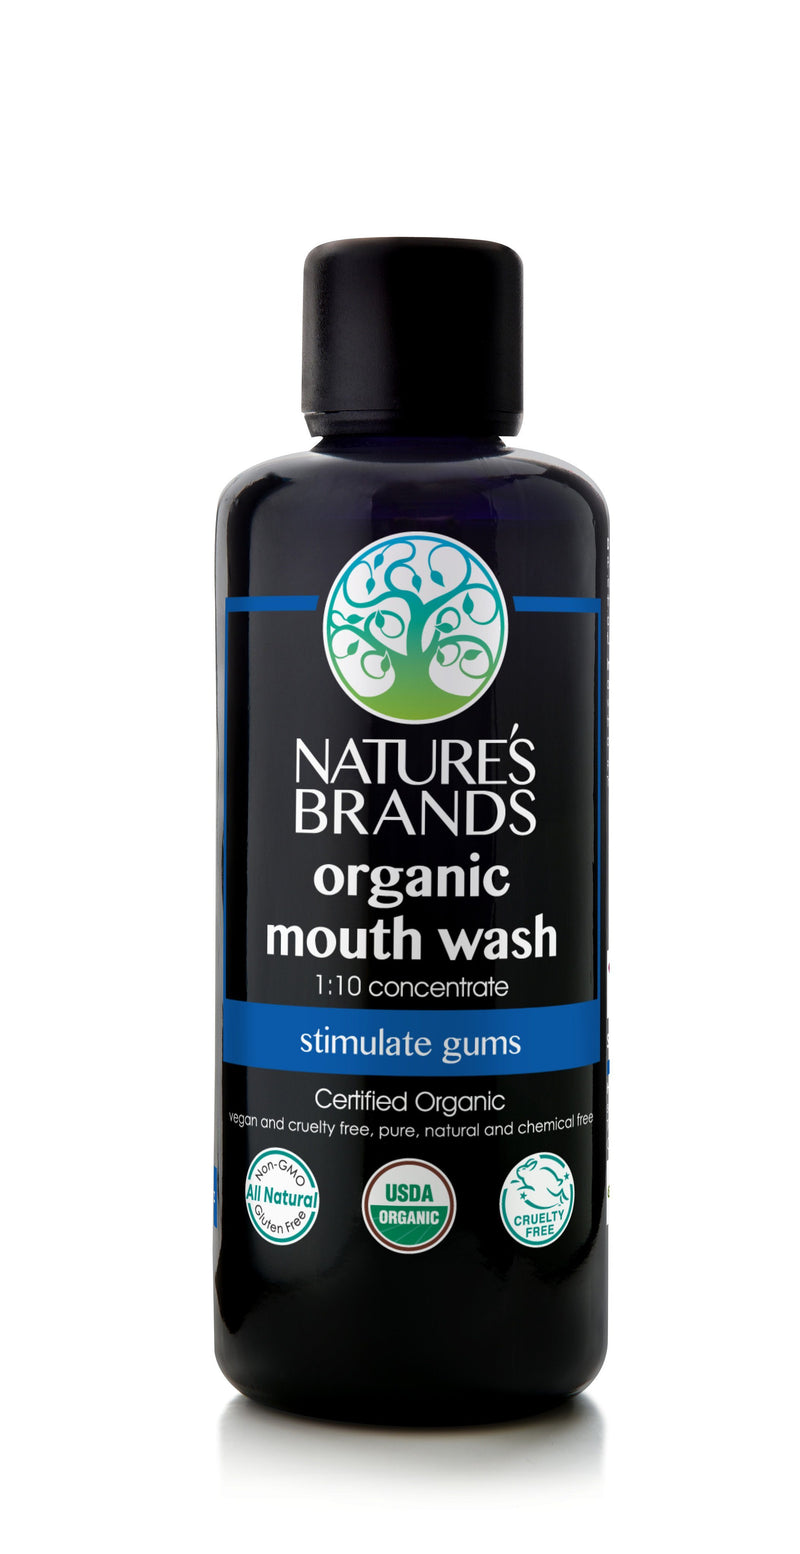 Herbal Choice Mari Organic Mouth Wash, 1:10 Concentrate - Herbal Choice Mari Organic Mouth Wash, 1:10 Concentrate - 3.4floz